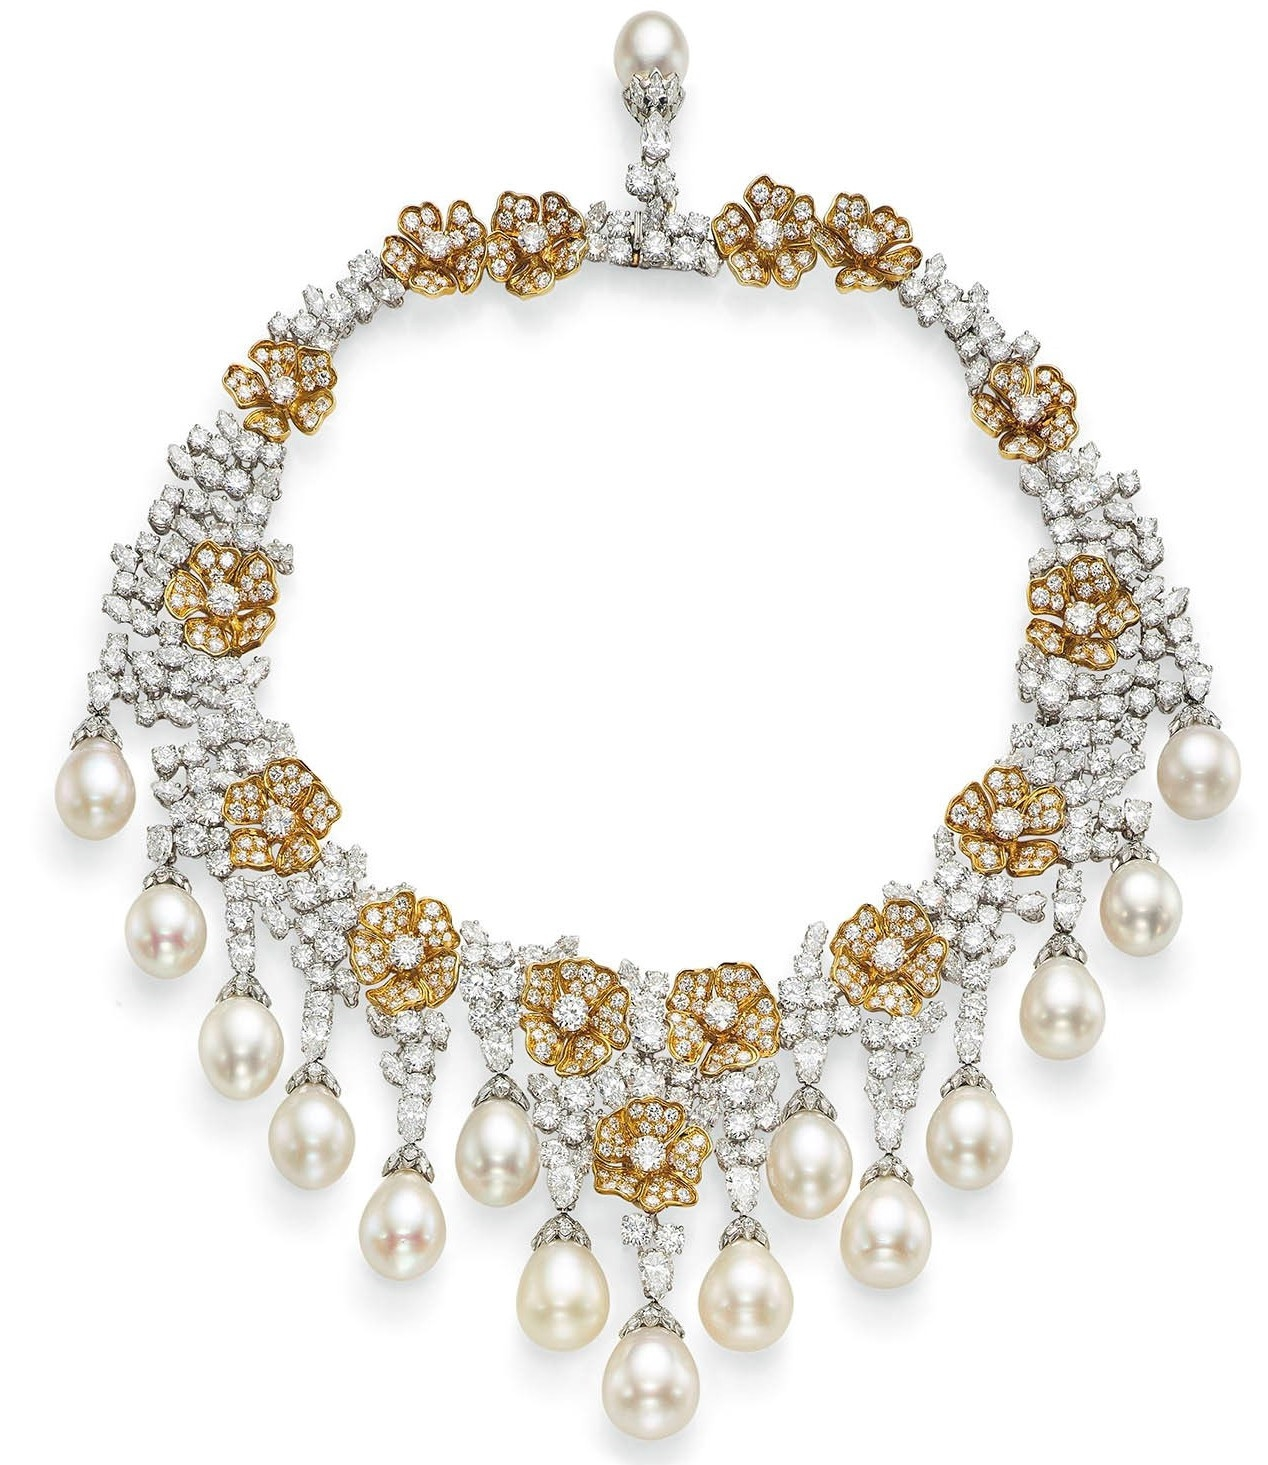 Cultured Pearl and Diamond Fringe Necklace and a Bangle and Pair of Earrings by Van Cleef & Arpels